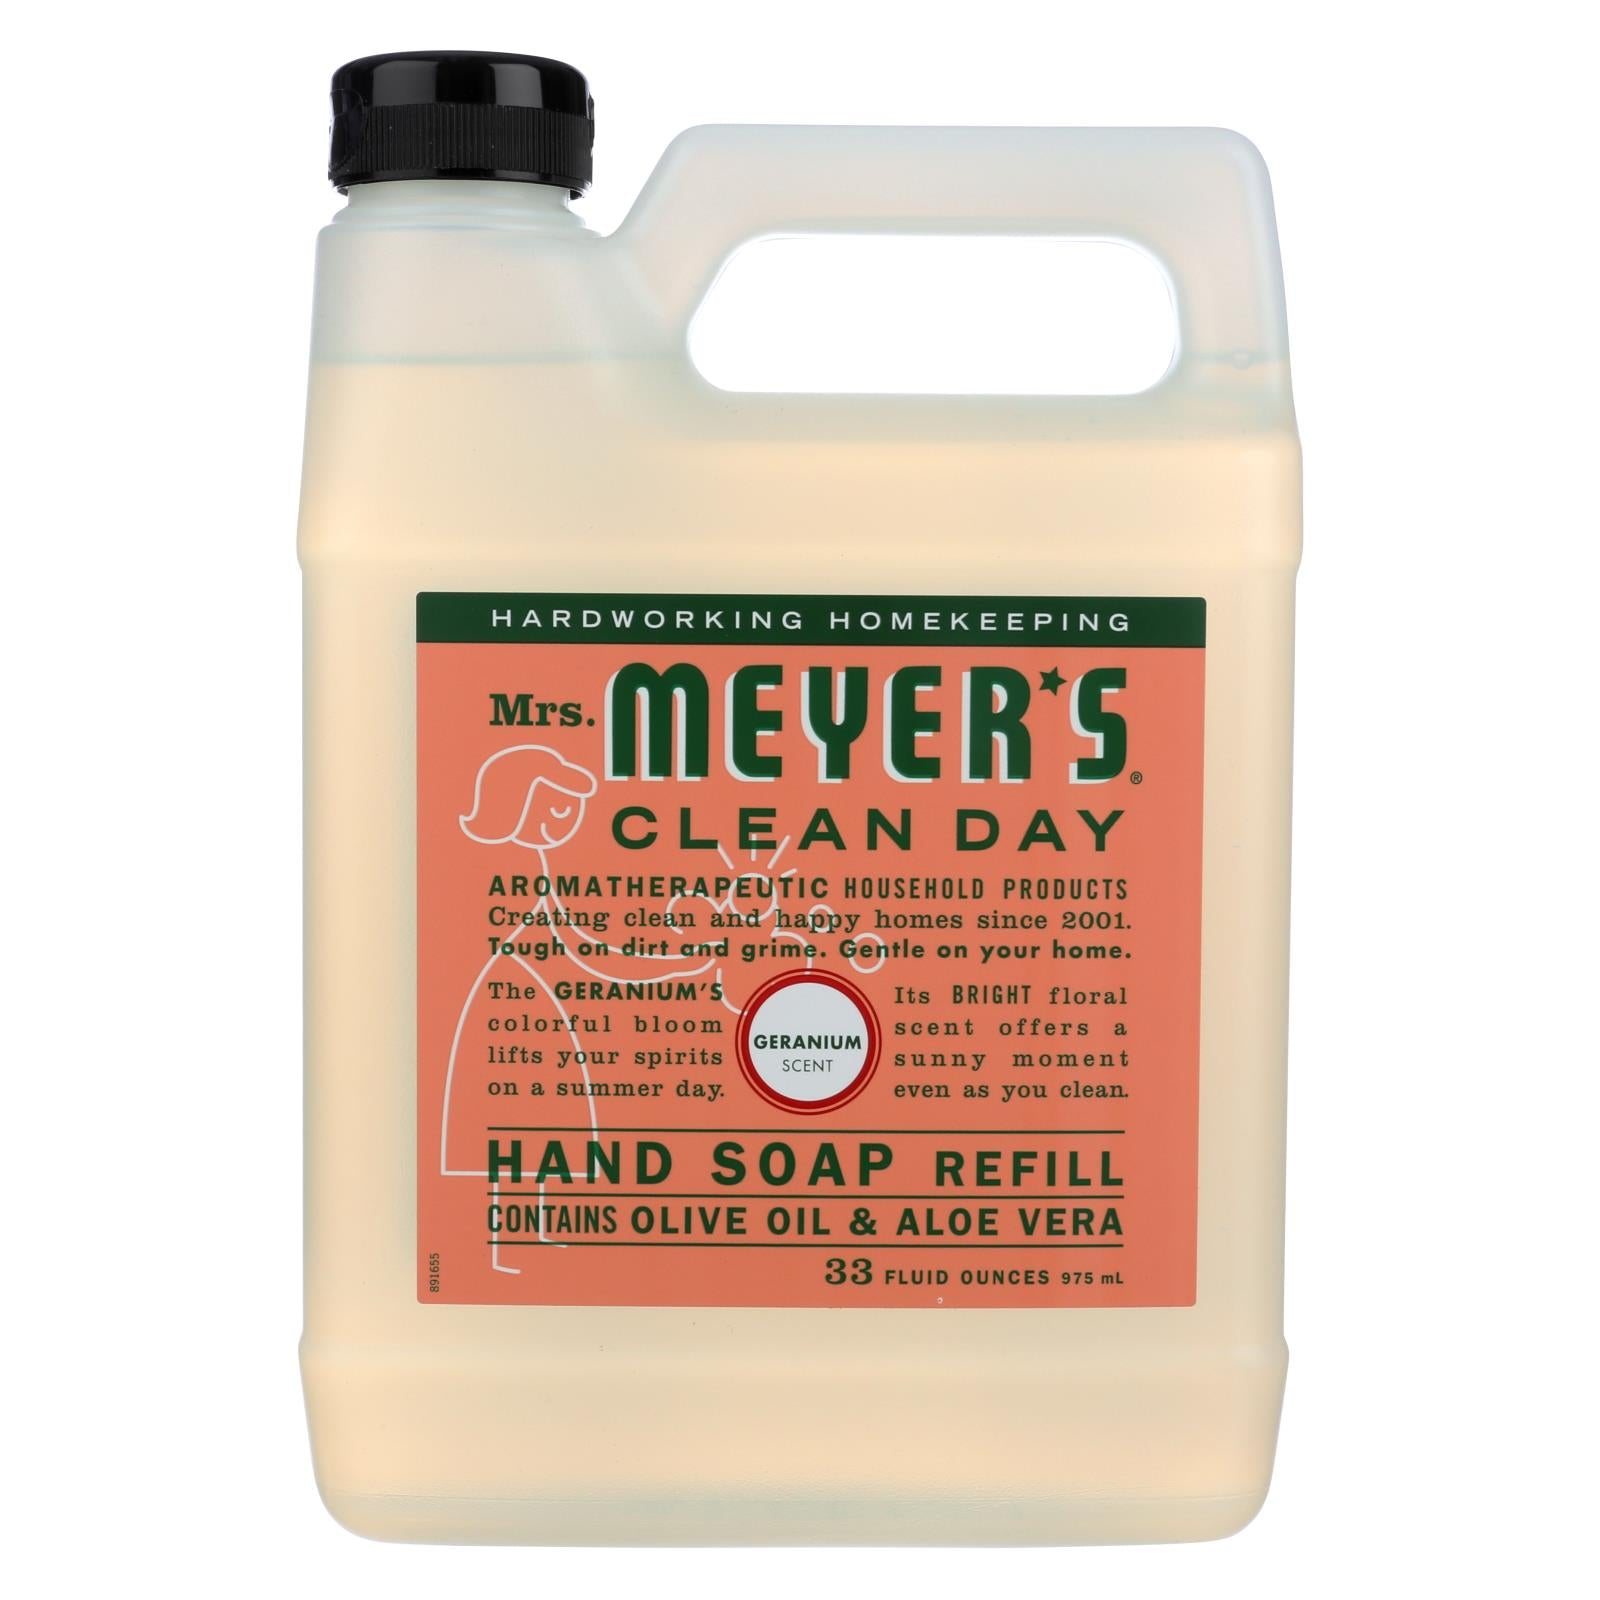 Buy Mrs. Meyer's Clean Day - Liquid Hand Soap Refill - Geranium - 33 fl oz - Liquid Hand Soap from Veroeco.com